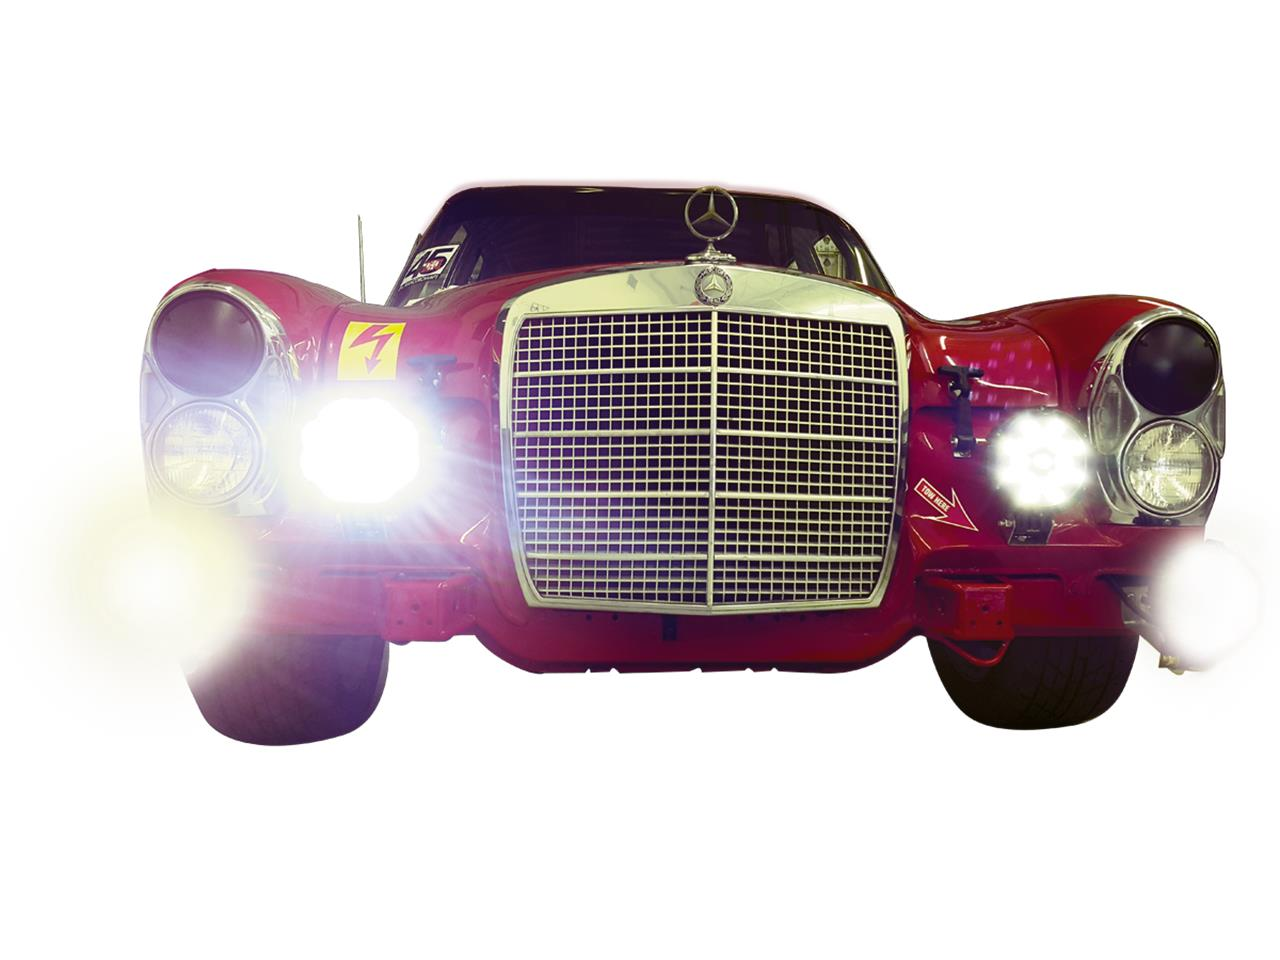 Large Picture of Classic 1969 Mercedes-Benz 280S located in FORT LAUDERDALE Florida Offered by a Private Seller - L16M